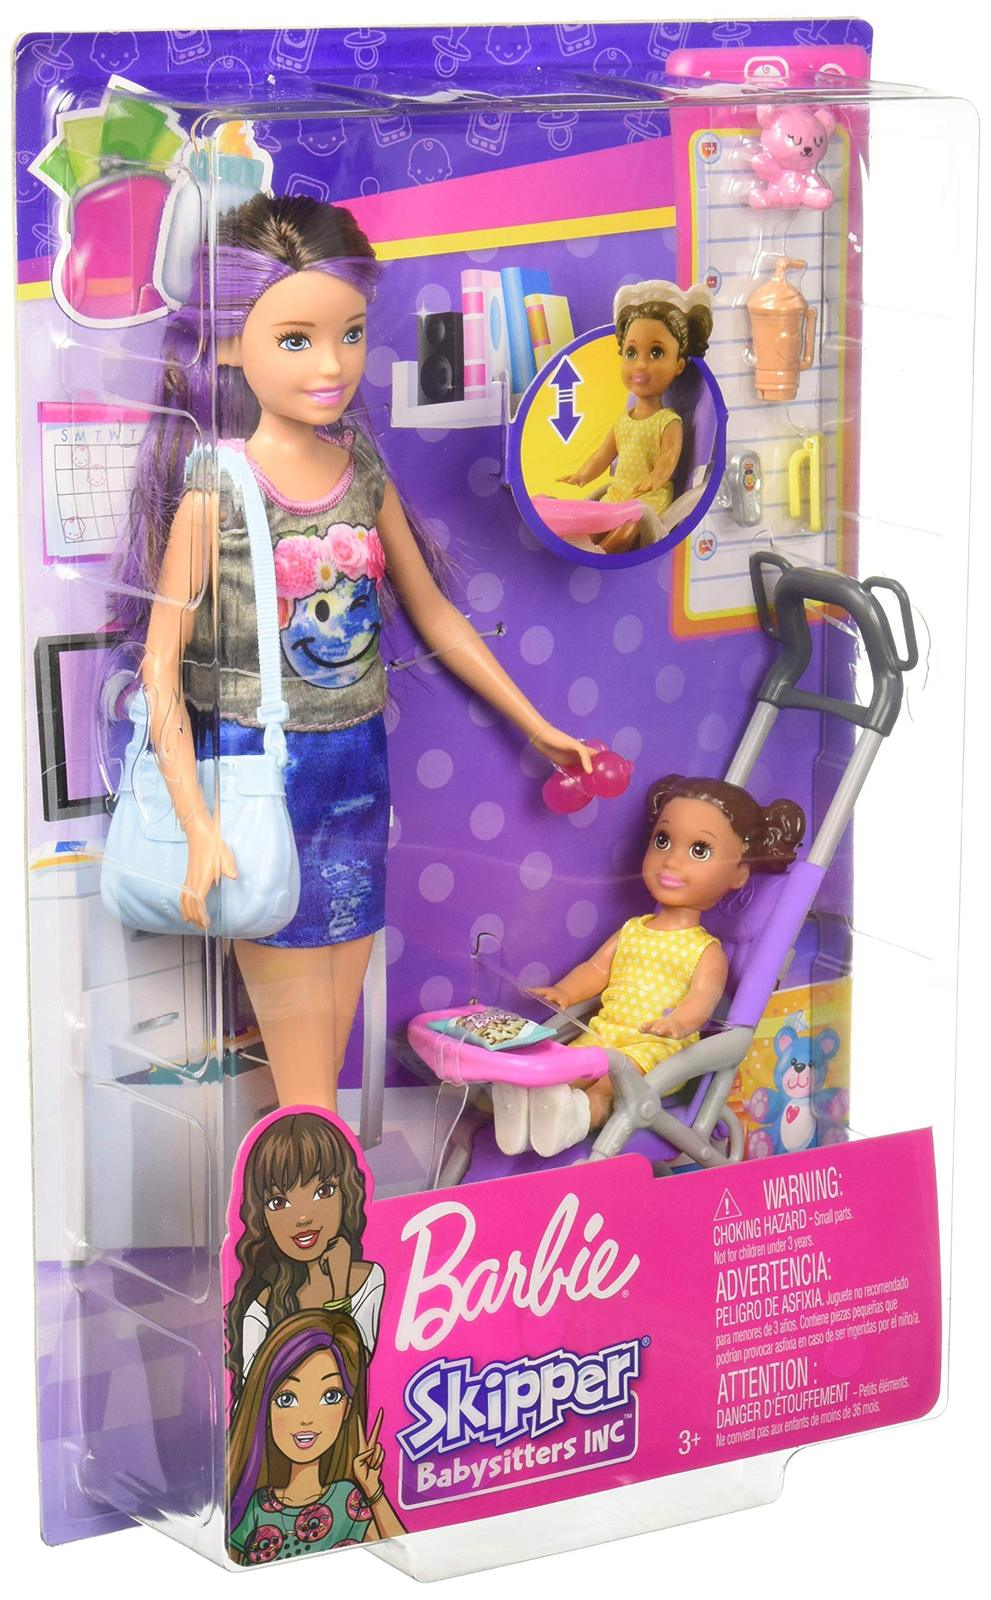 Barbie Skipper Babysitters Inc. Doll and Stroller Playset ...